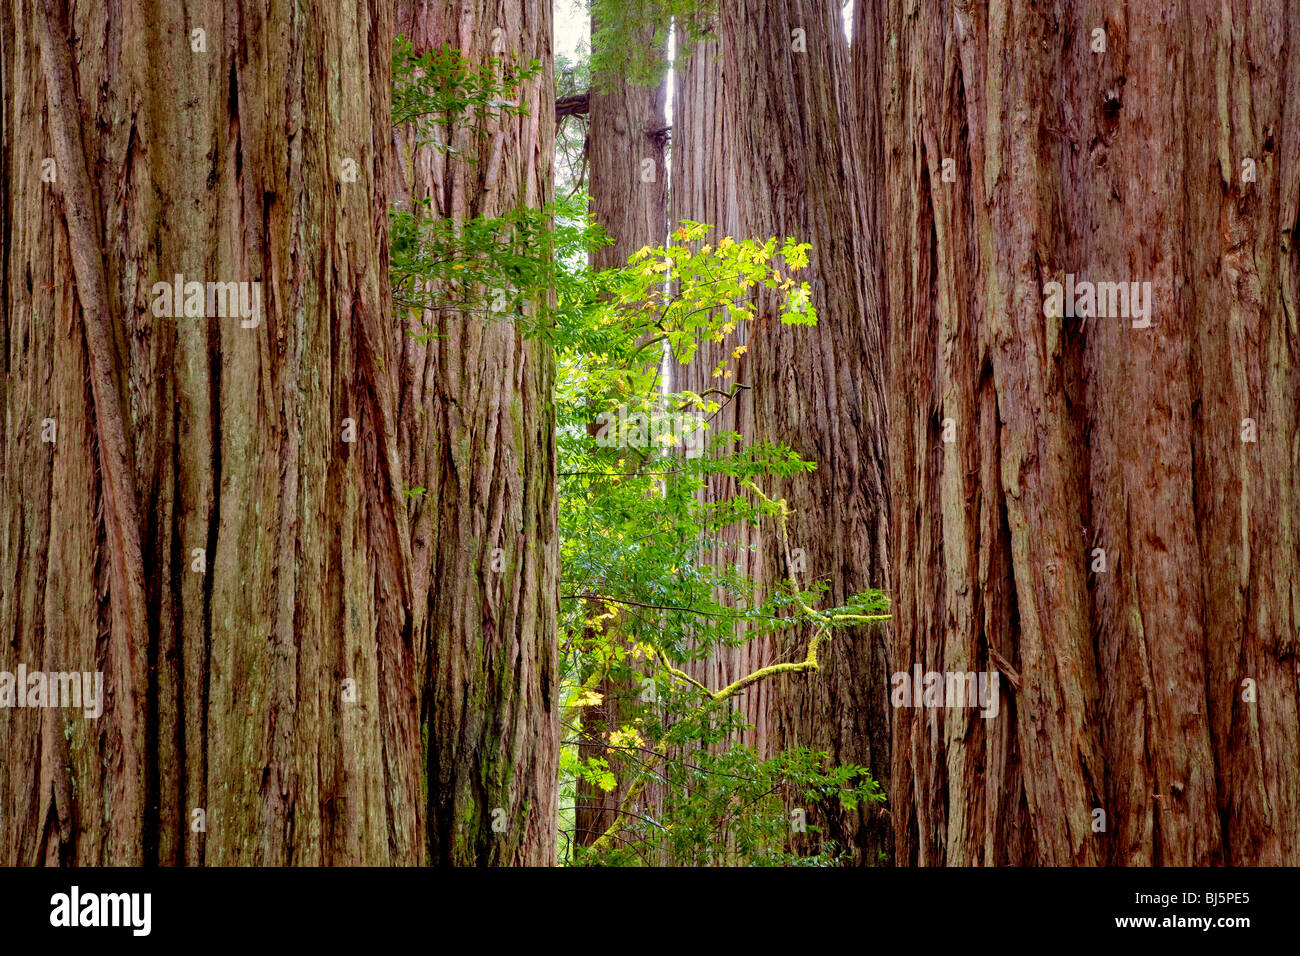 Redwoods and big leaf maple tree in fall color. Jedediah Smith Redwoods State Park, California - Stock Image